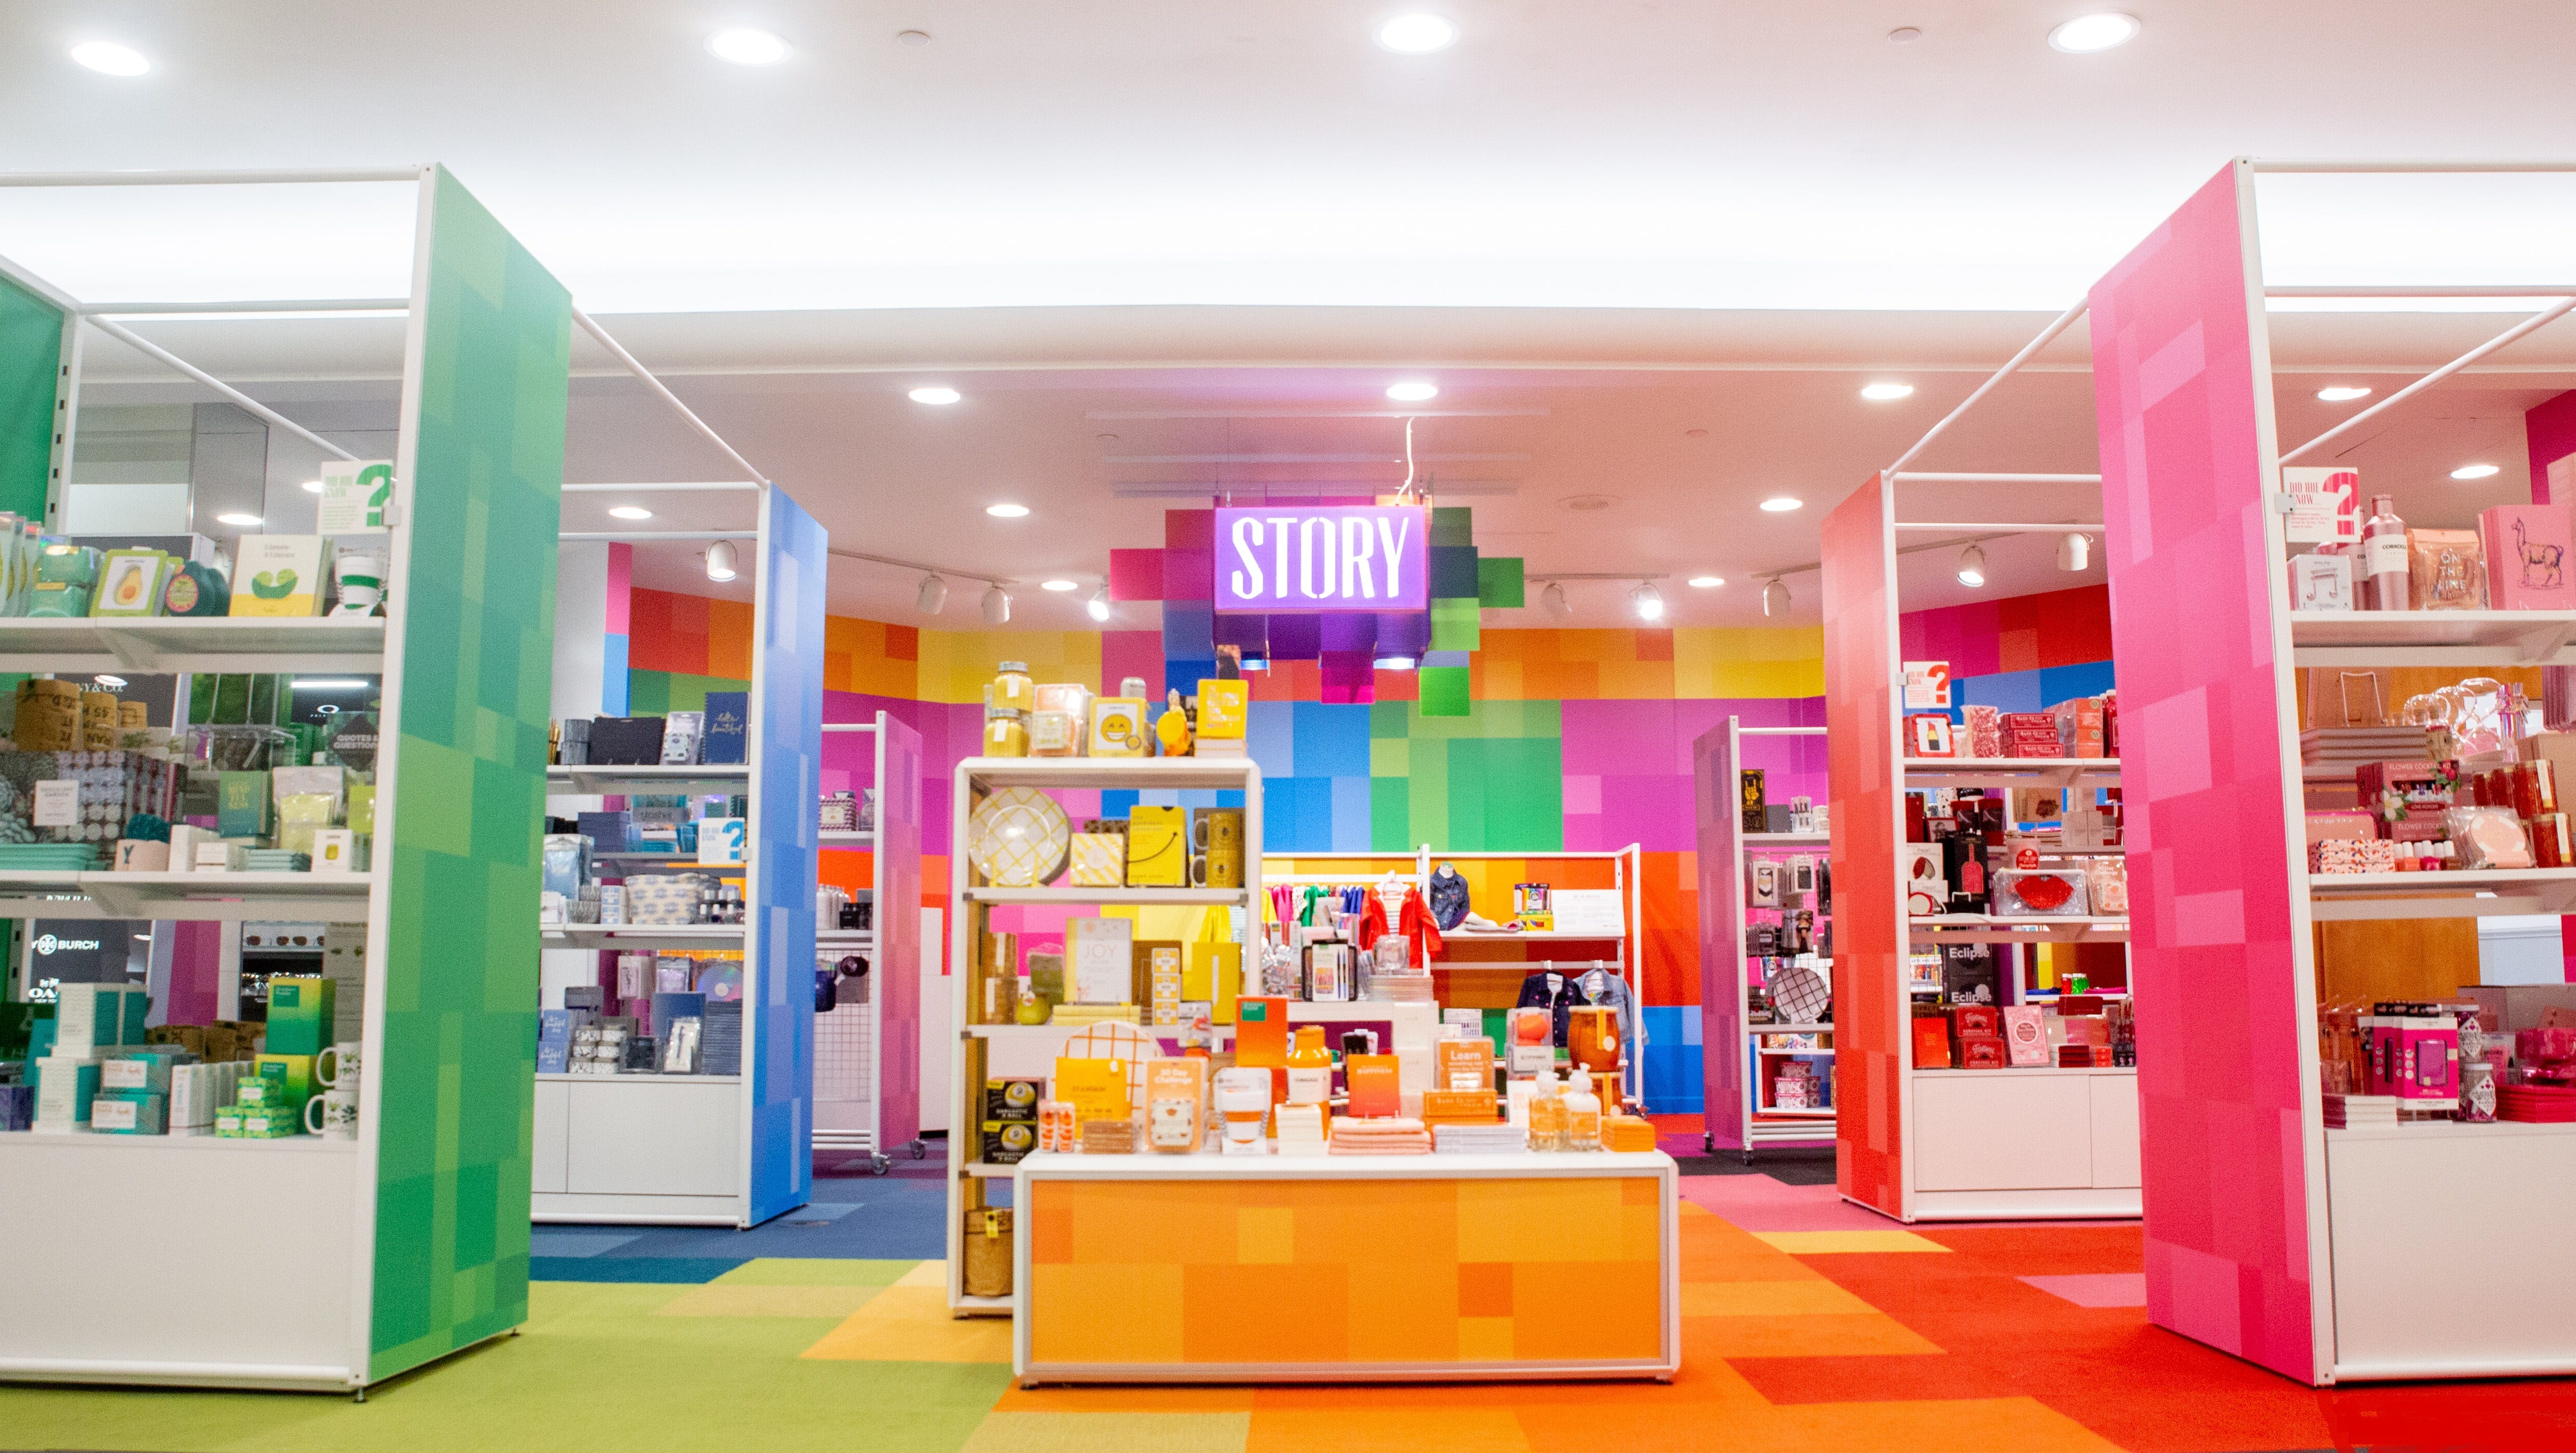 Macy's, tinkering with shopper experience, launches Story concept at stores in NY and NJ